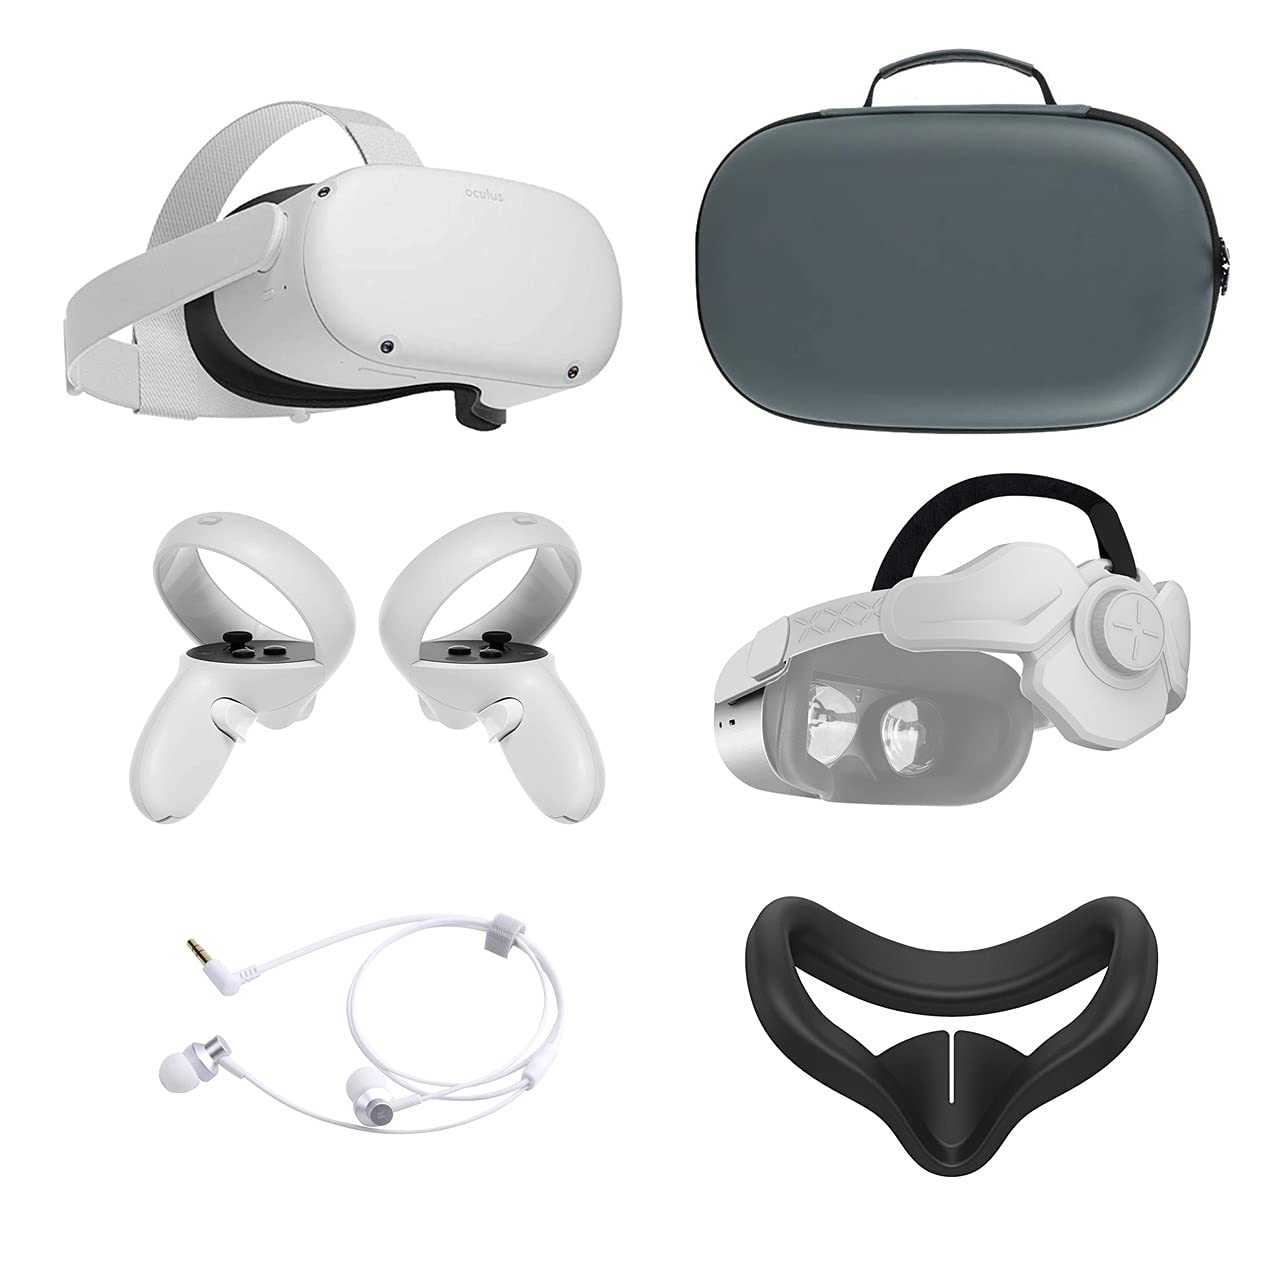 2021 Oculus Quest 2 All-In-One Controlle 128GB Headset VR All items free shipping Touch Challenge the lowest price